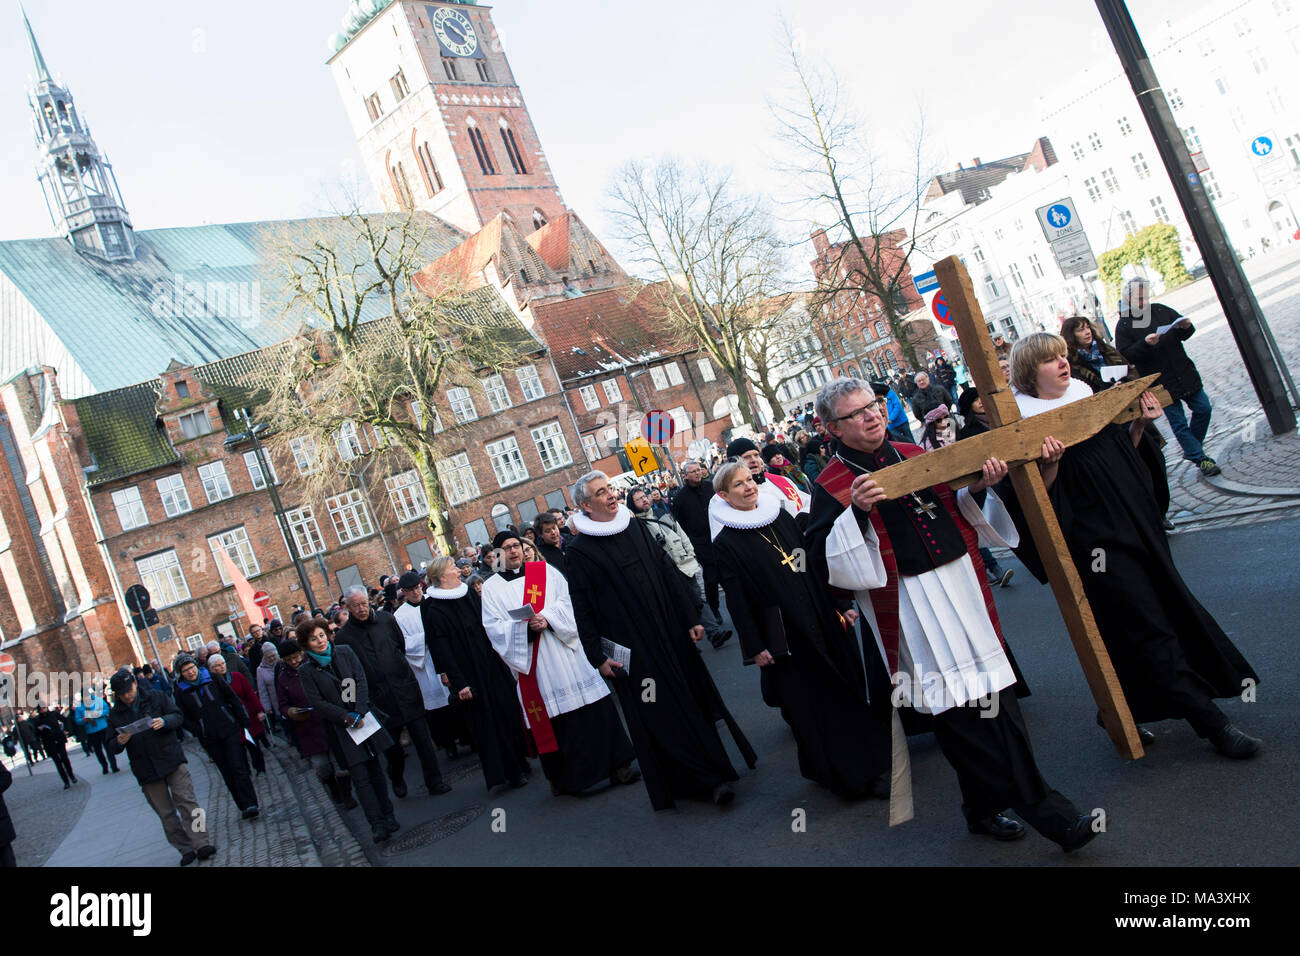 30 March 2018 People Participating In An Ecumenical Good Friday Procession Hold A Wooden Cross The Has Been Lubeck Tradition Since